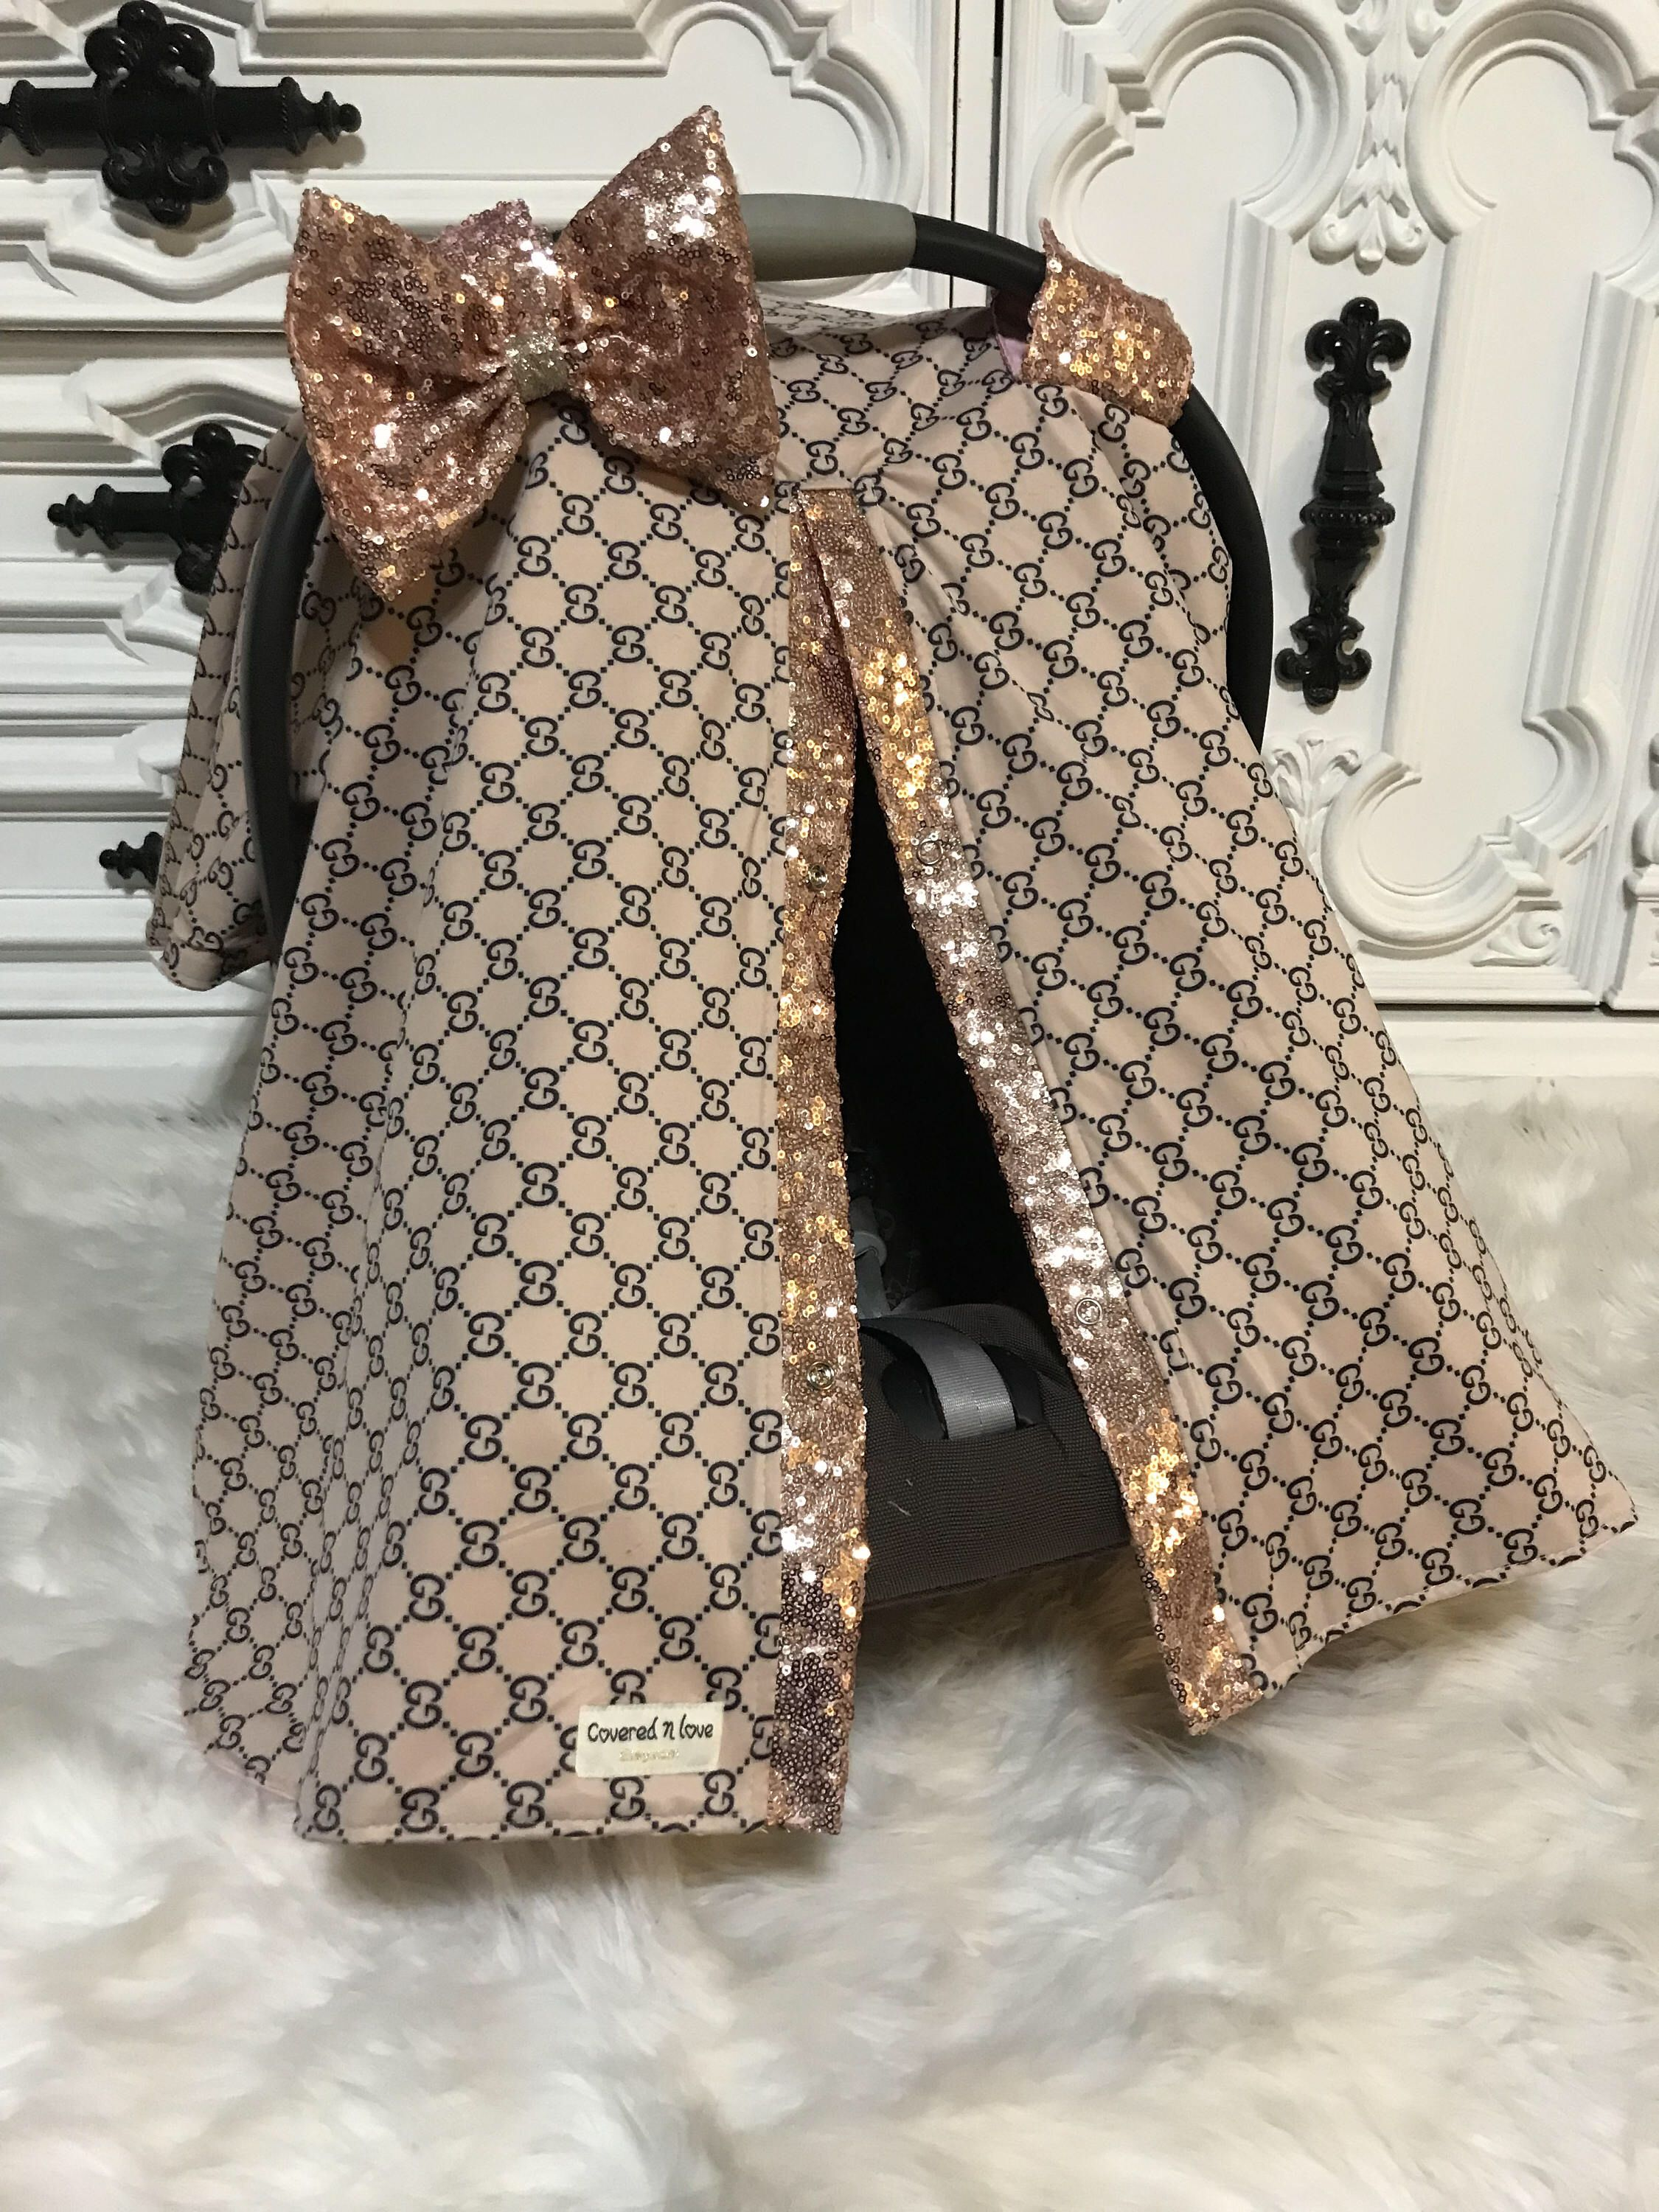 Car Seat Canopy Gucci Inspired Custom Jumbo BLING Bow Included